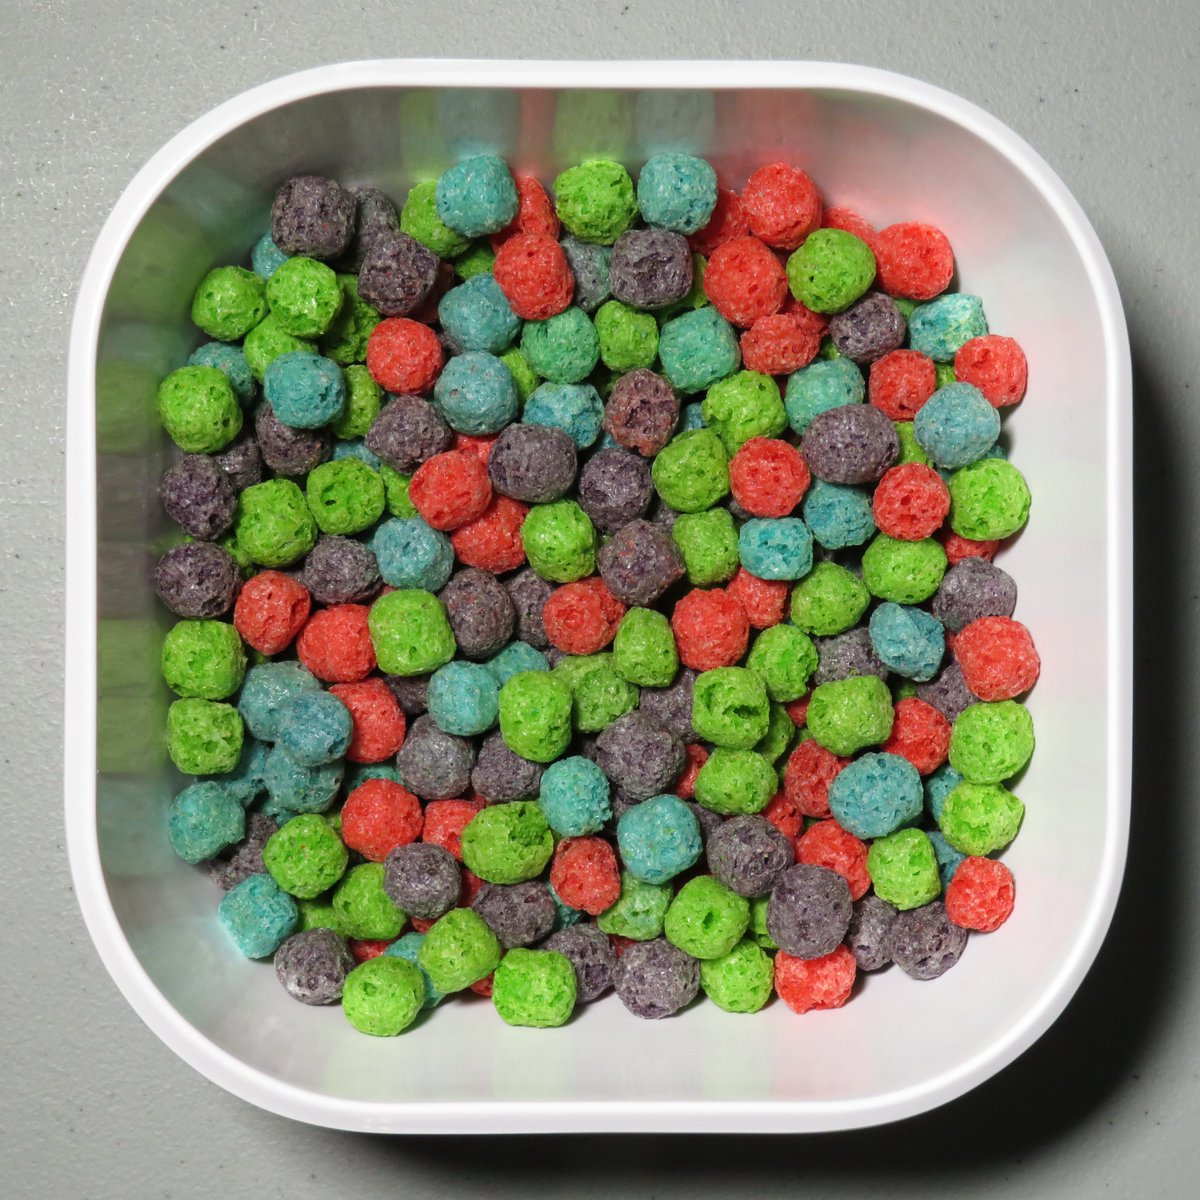 Cap'n Crunch Oops All Berries : If the video embedded above is not viewable, you can see it at these other fine video sharing sites: